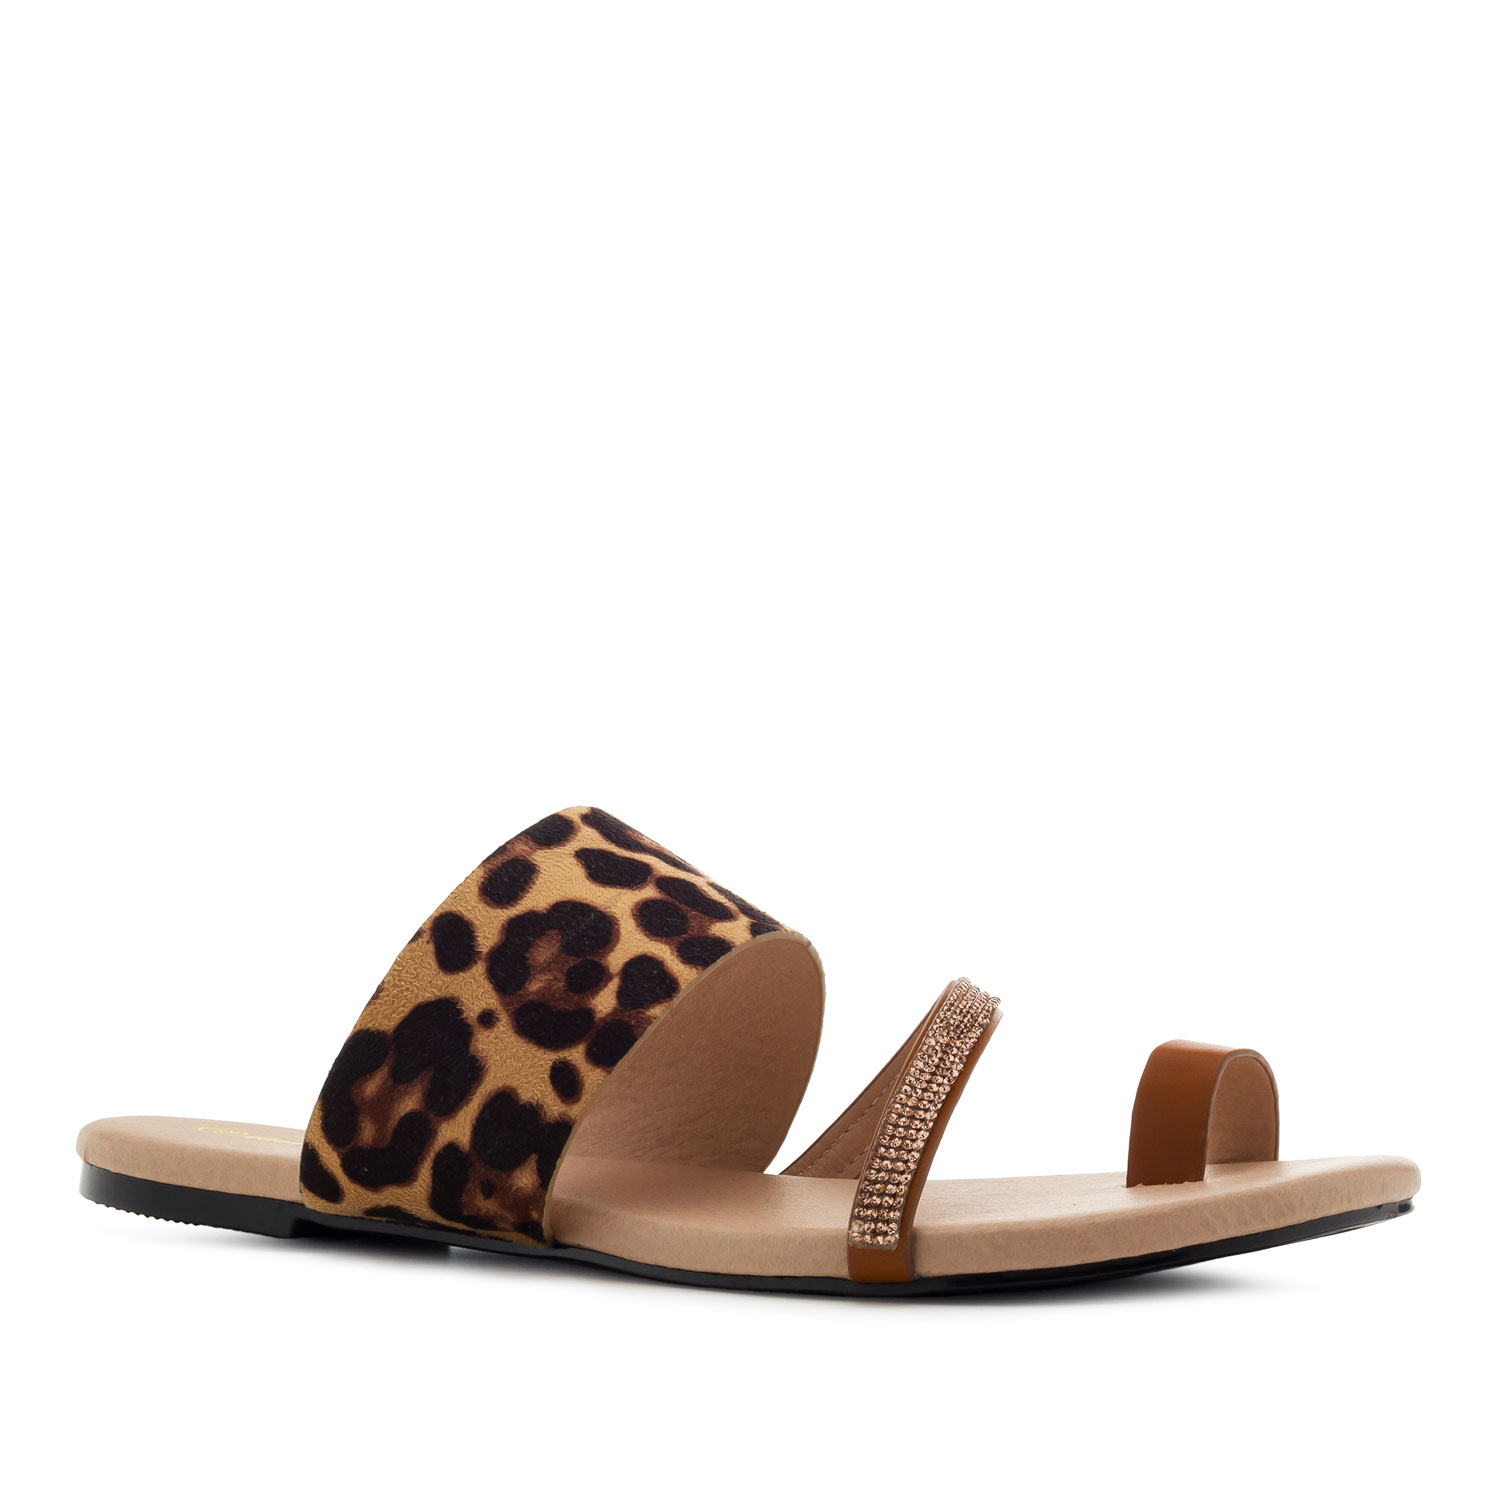 Toe Flat Sandals in Brown Leopard Print